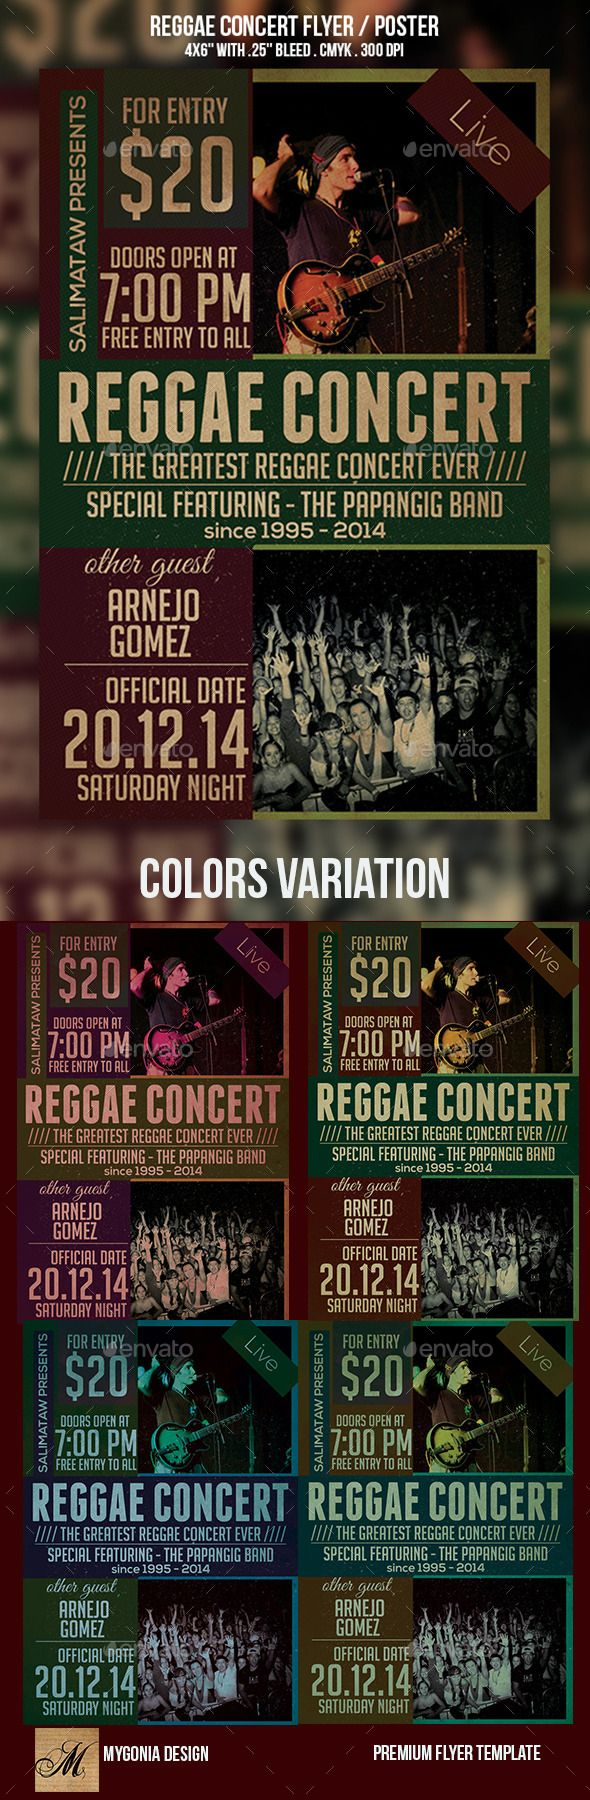 Reggae Concert Flyer / Poster by salimataw10 This flyer is suitable for Reggae Concert, event or parties. -The flyers size is 46 with .25 bleeds, CMYK 300DPI. -Layers are all